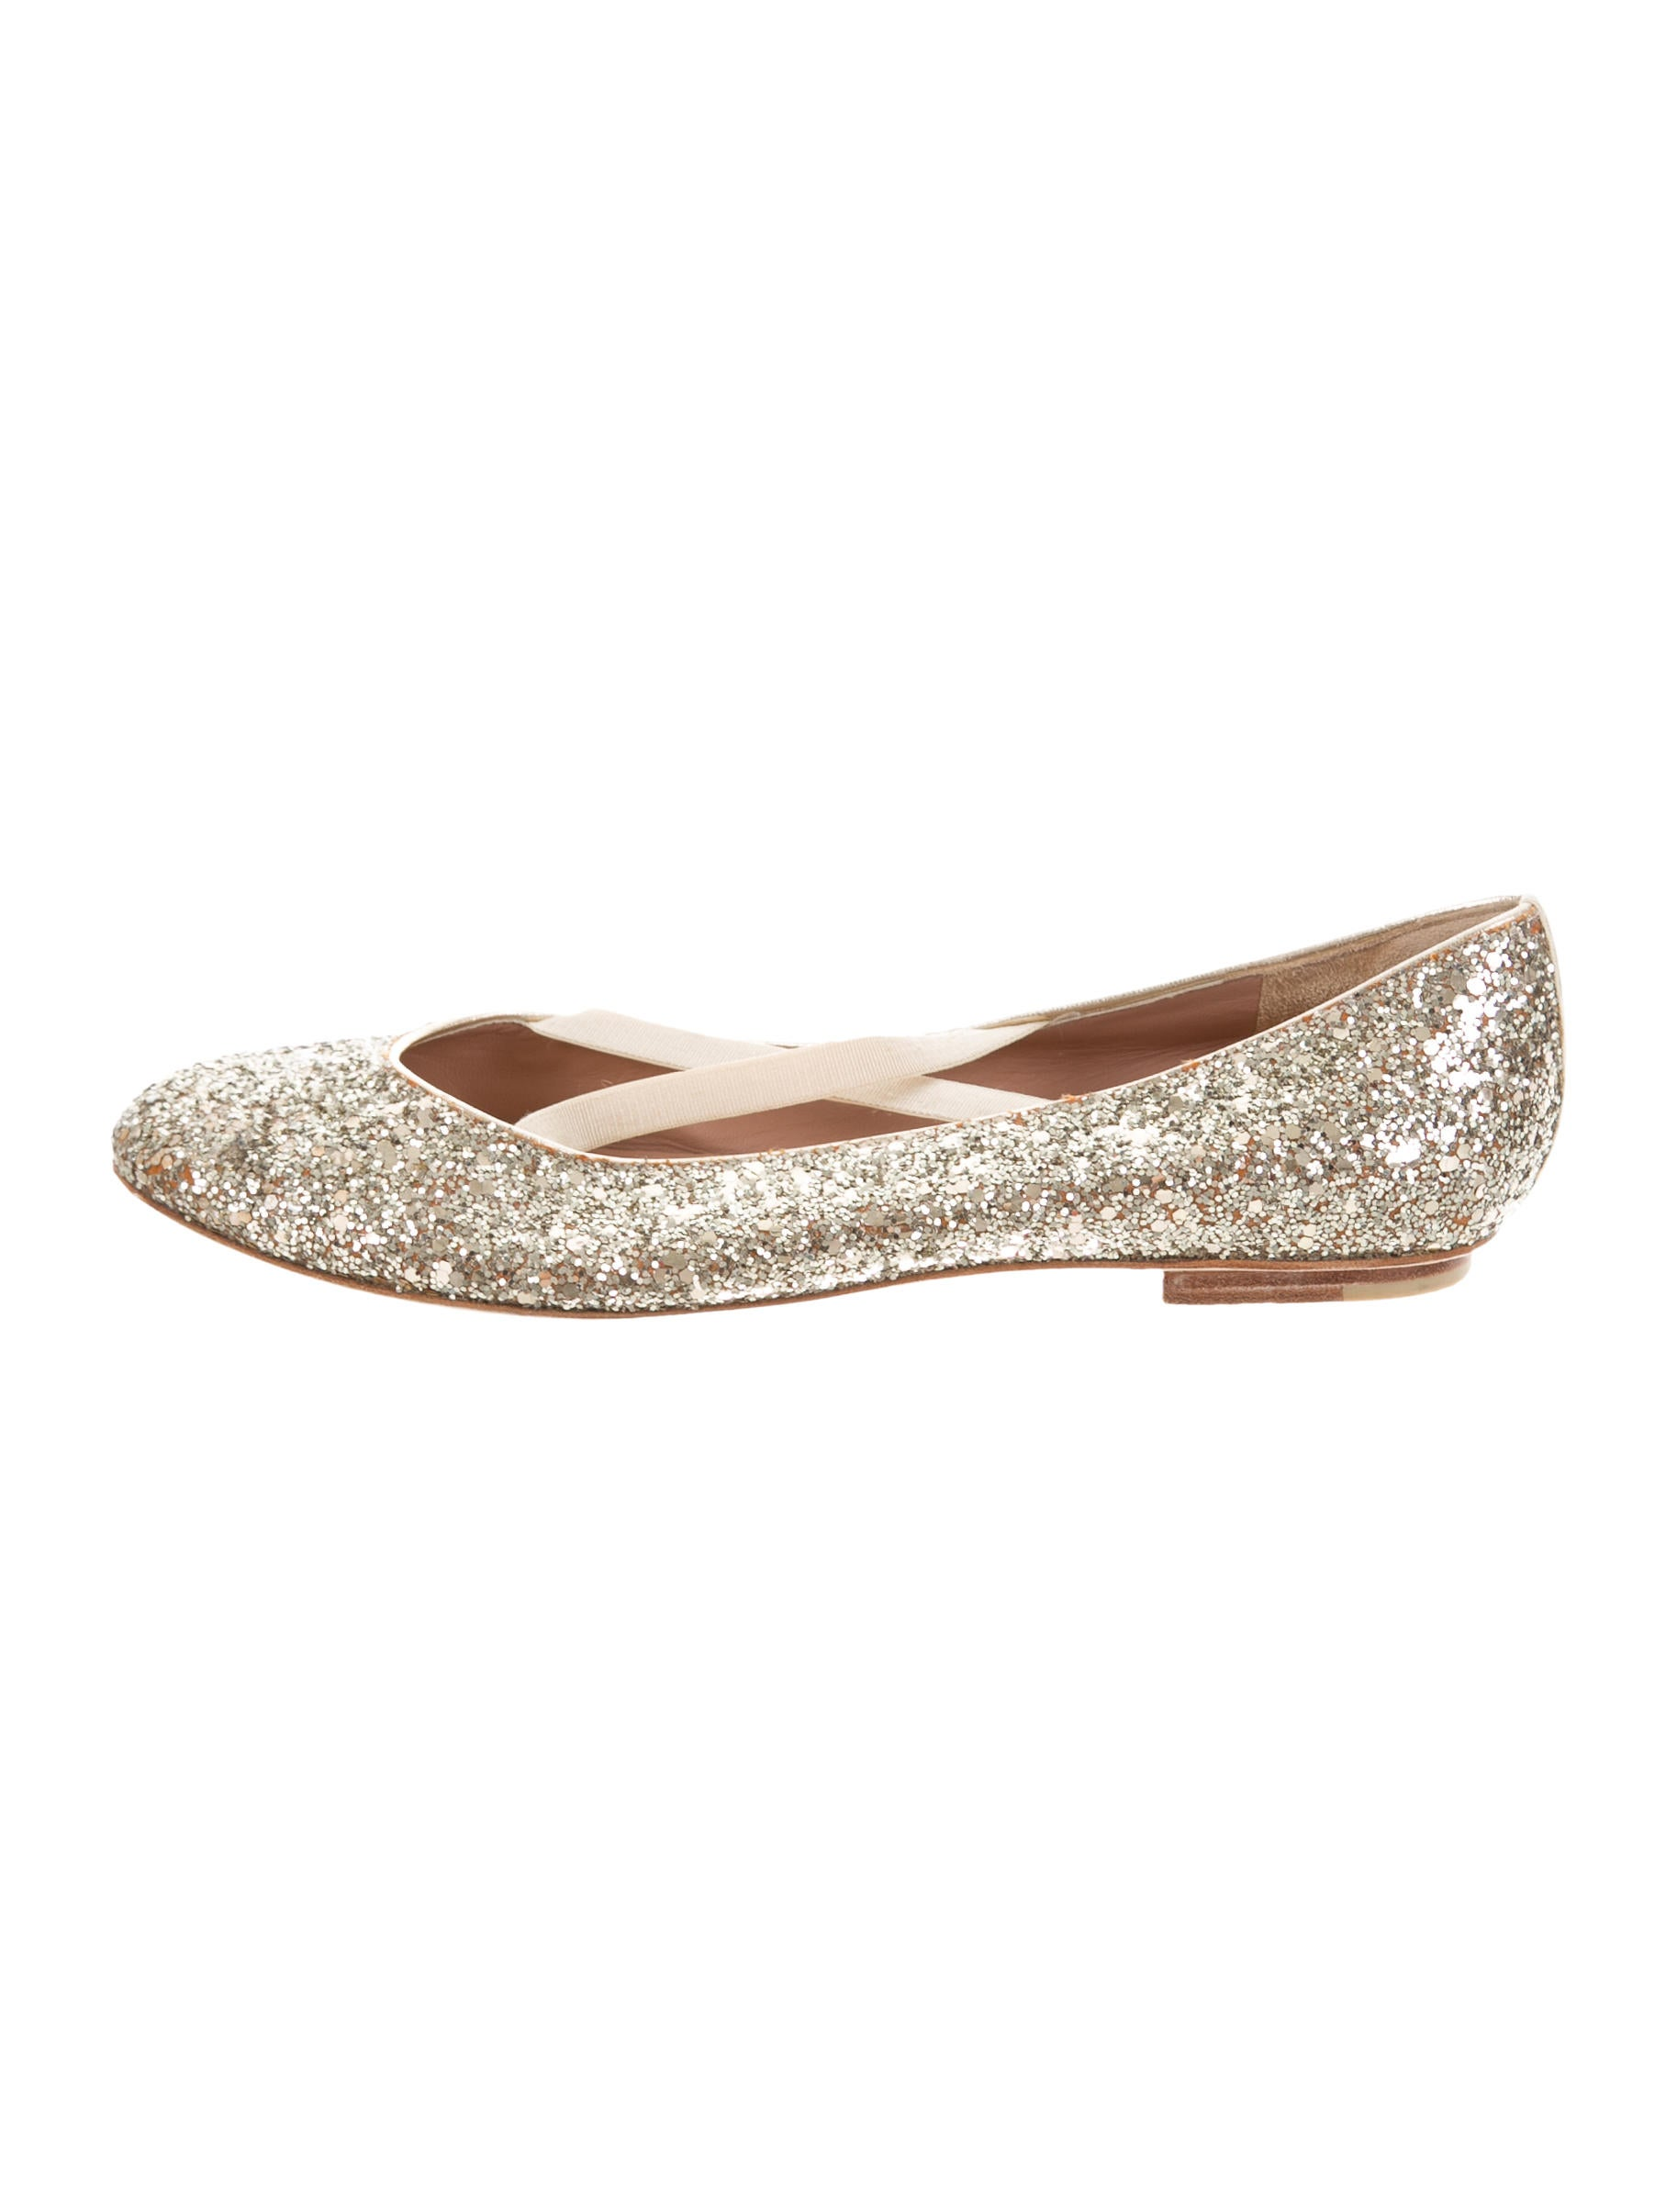 Marc by Marc Jacobs Glitter Round-Toe Flats sale cheap get to buy online clearance sale y12sl8